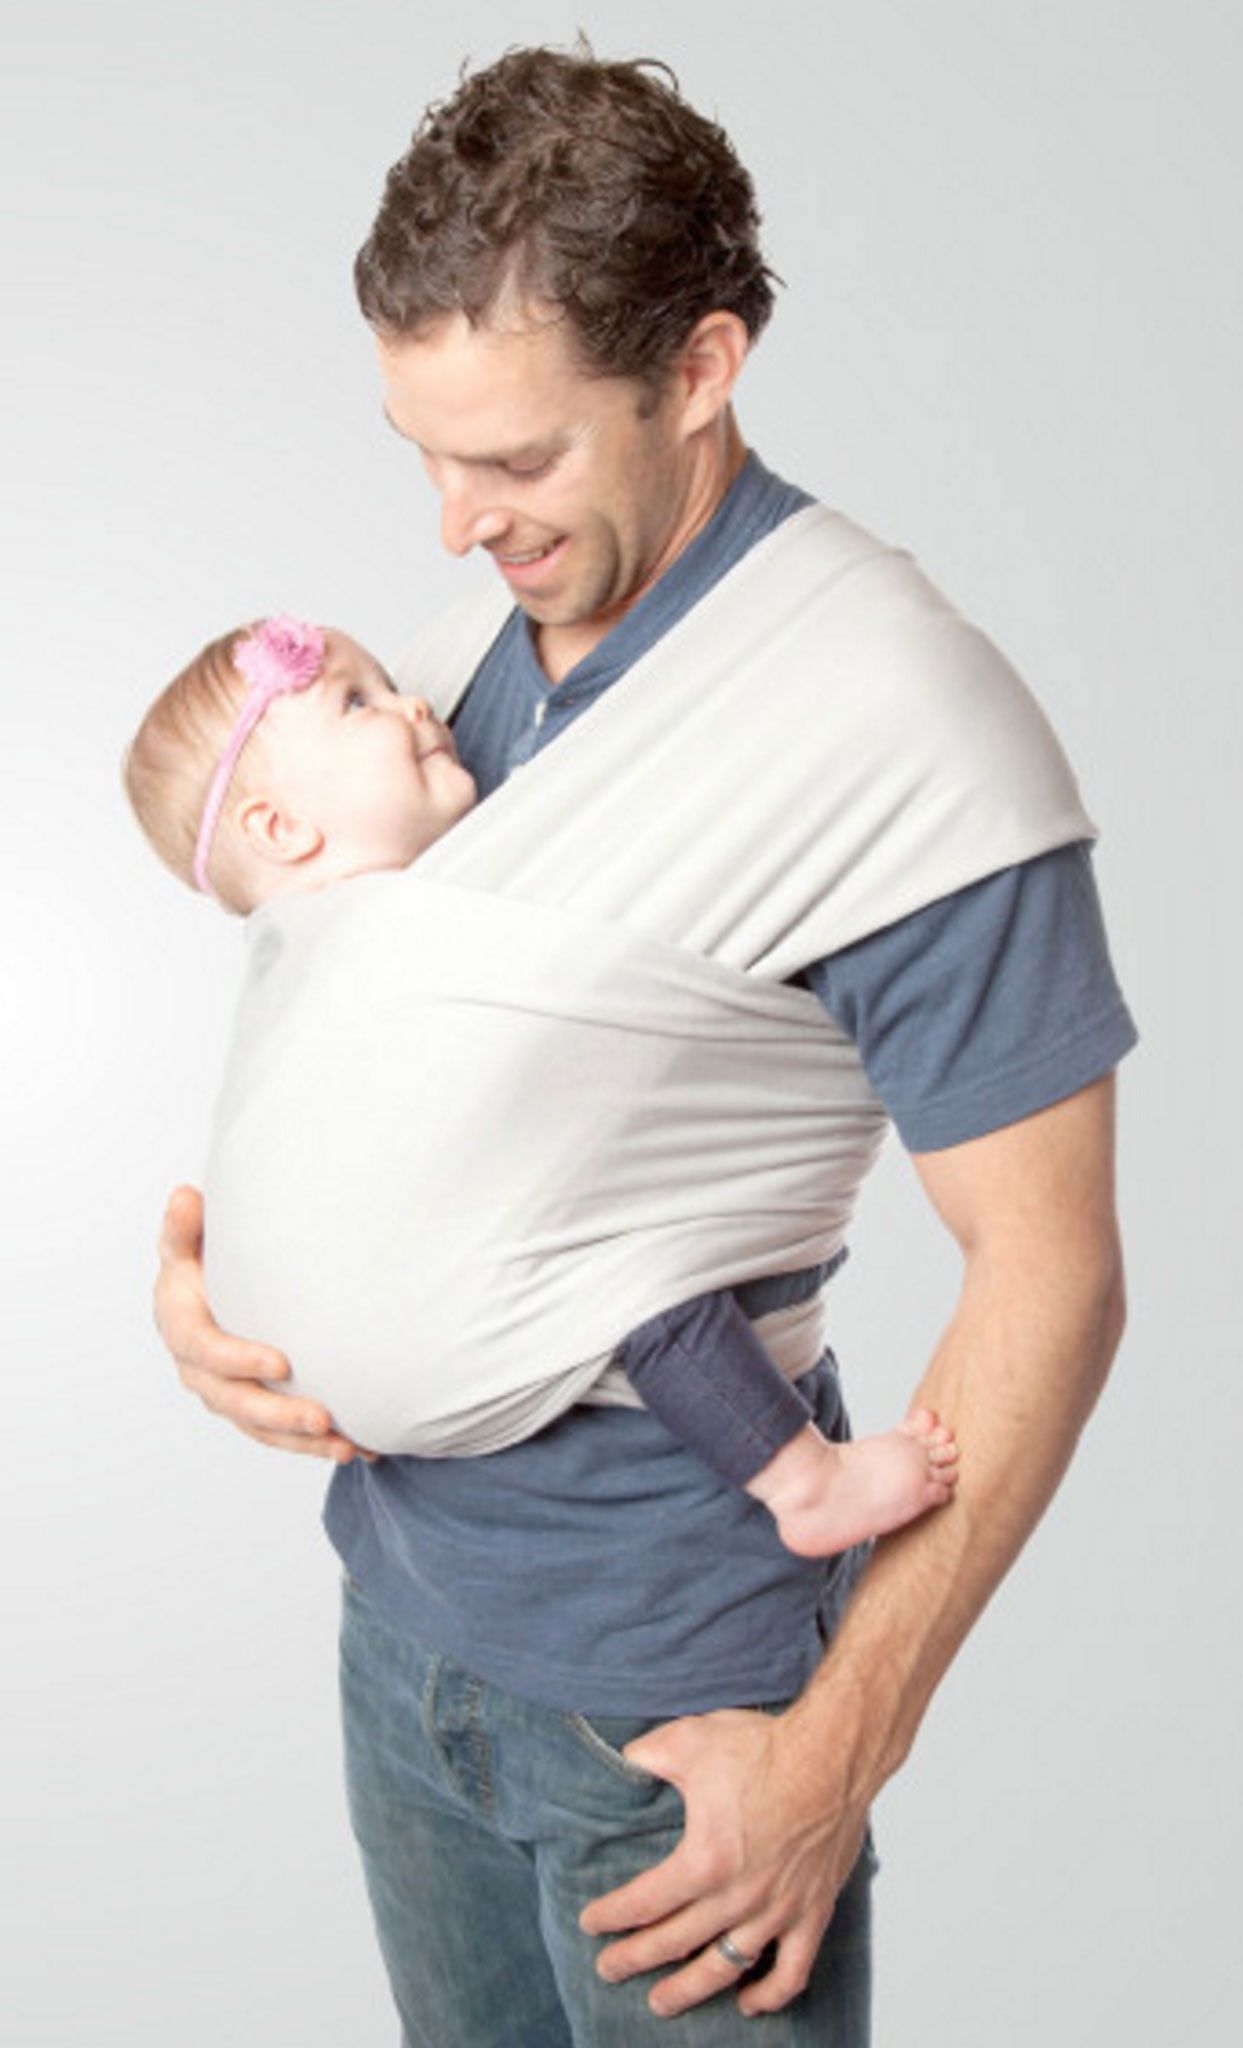 cc911db78ac The Original Moby Wrap - Bamboo. Moby Wrap Evolution Baby ...